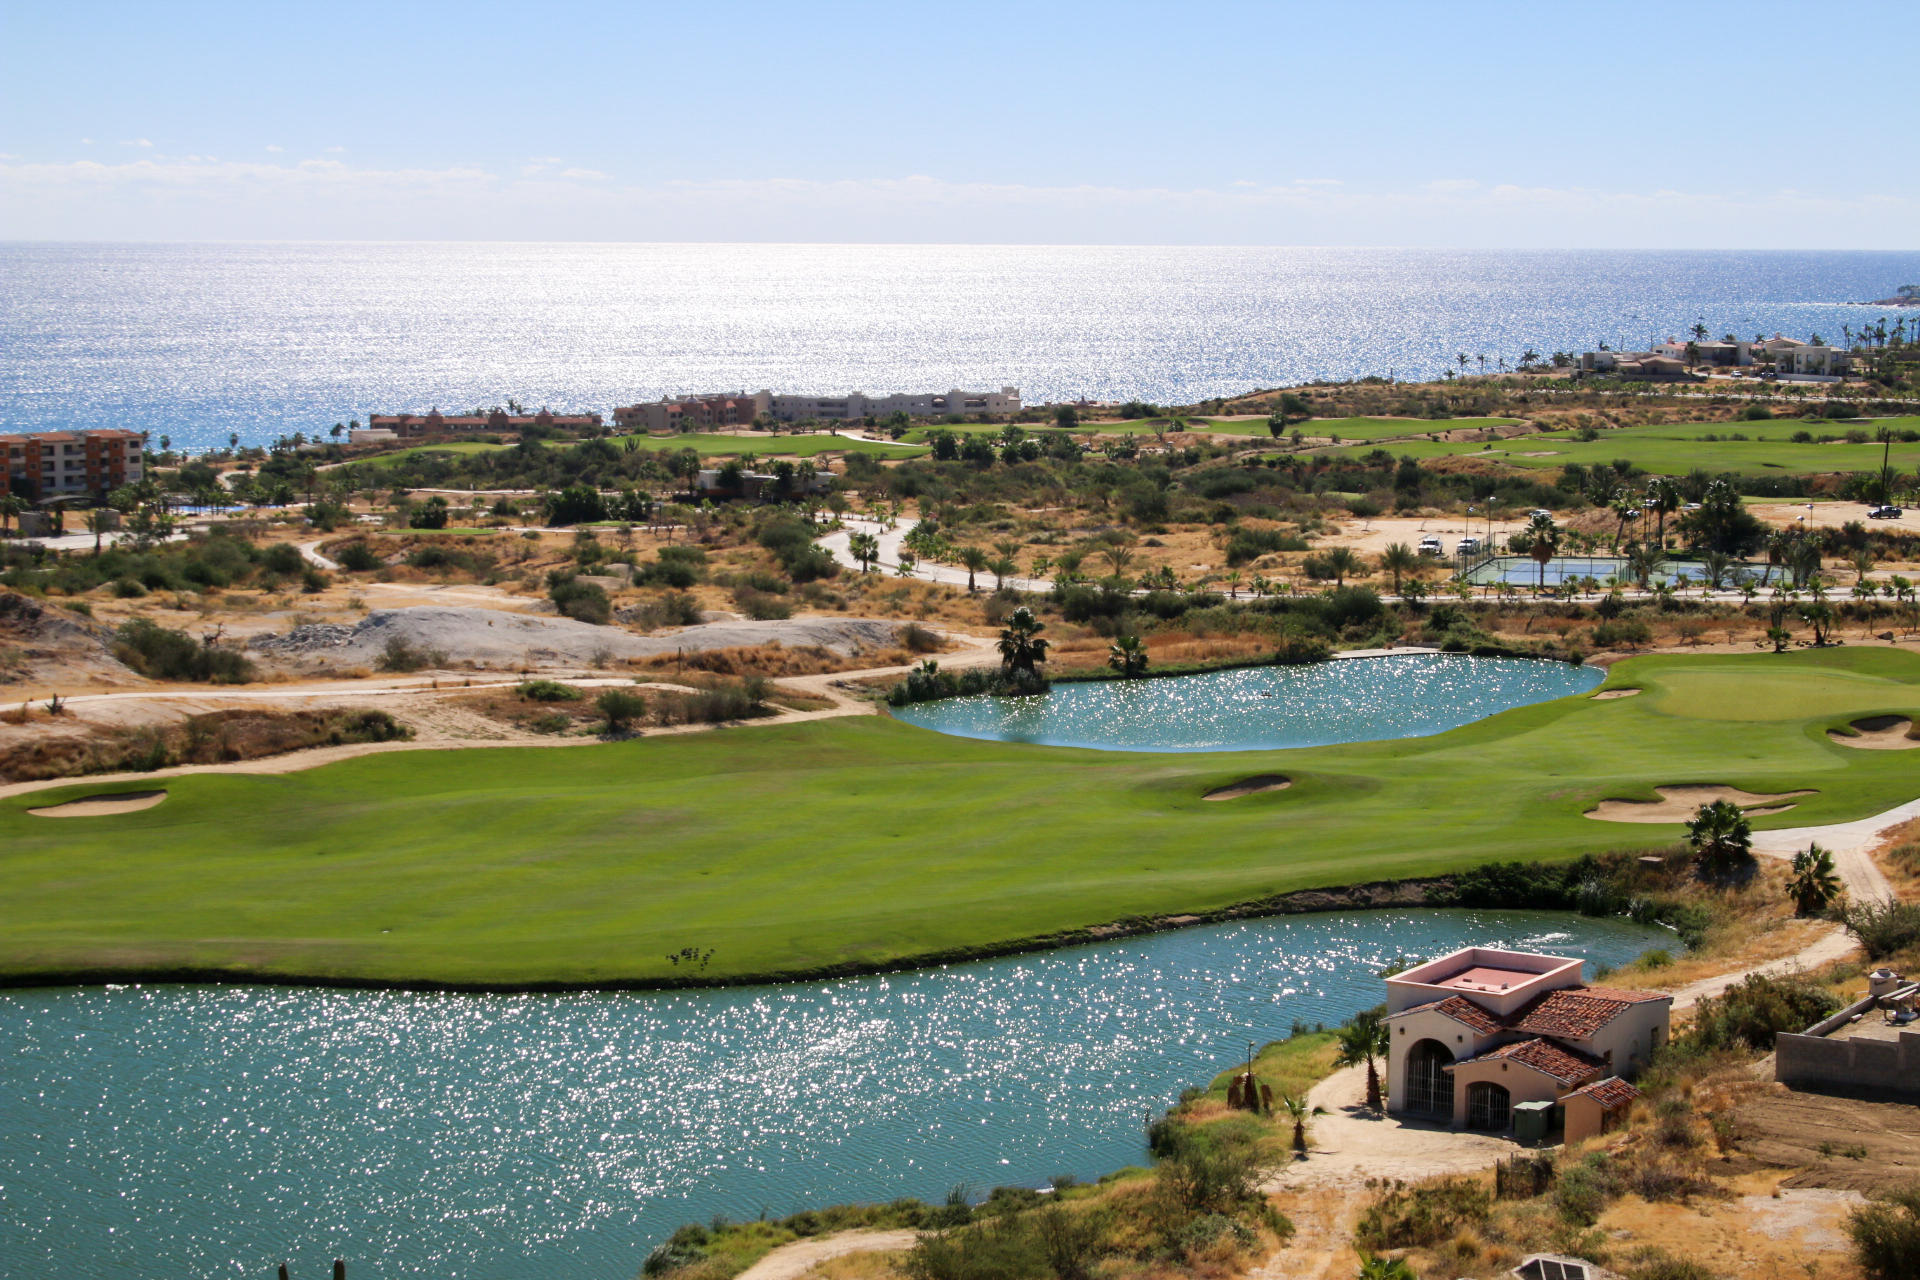 Campestre Mountaintop lot-7